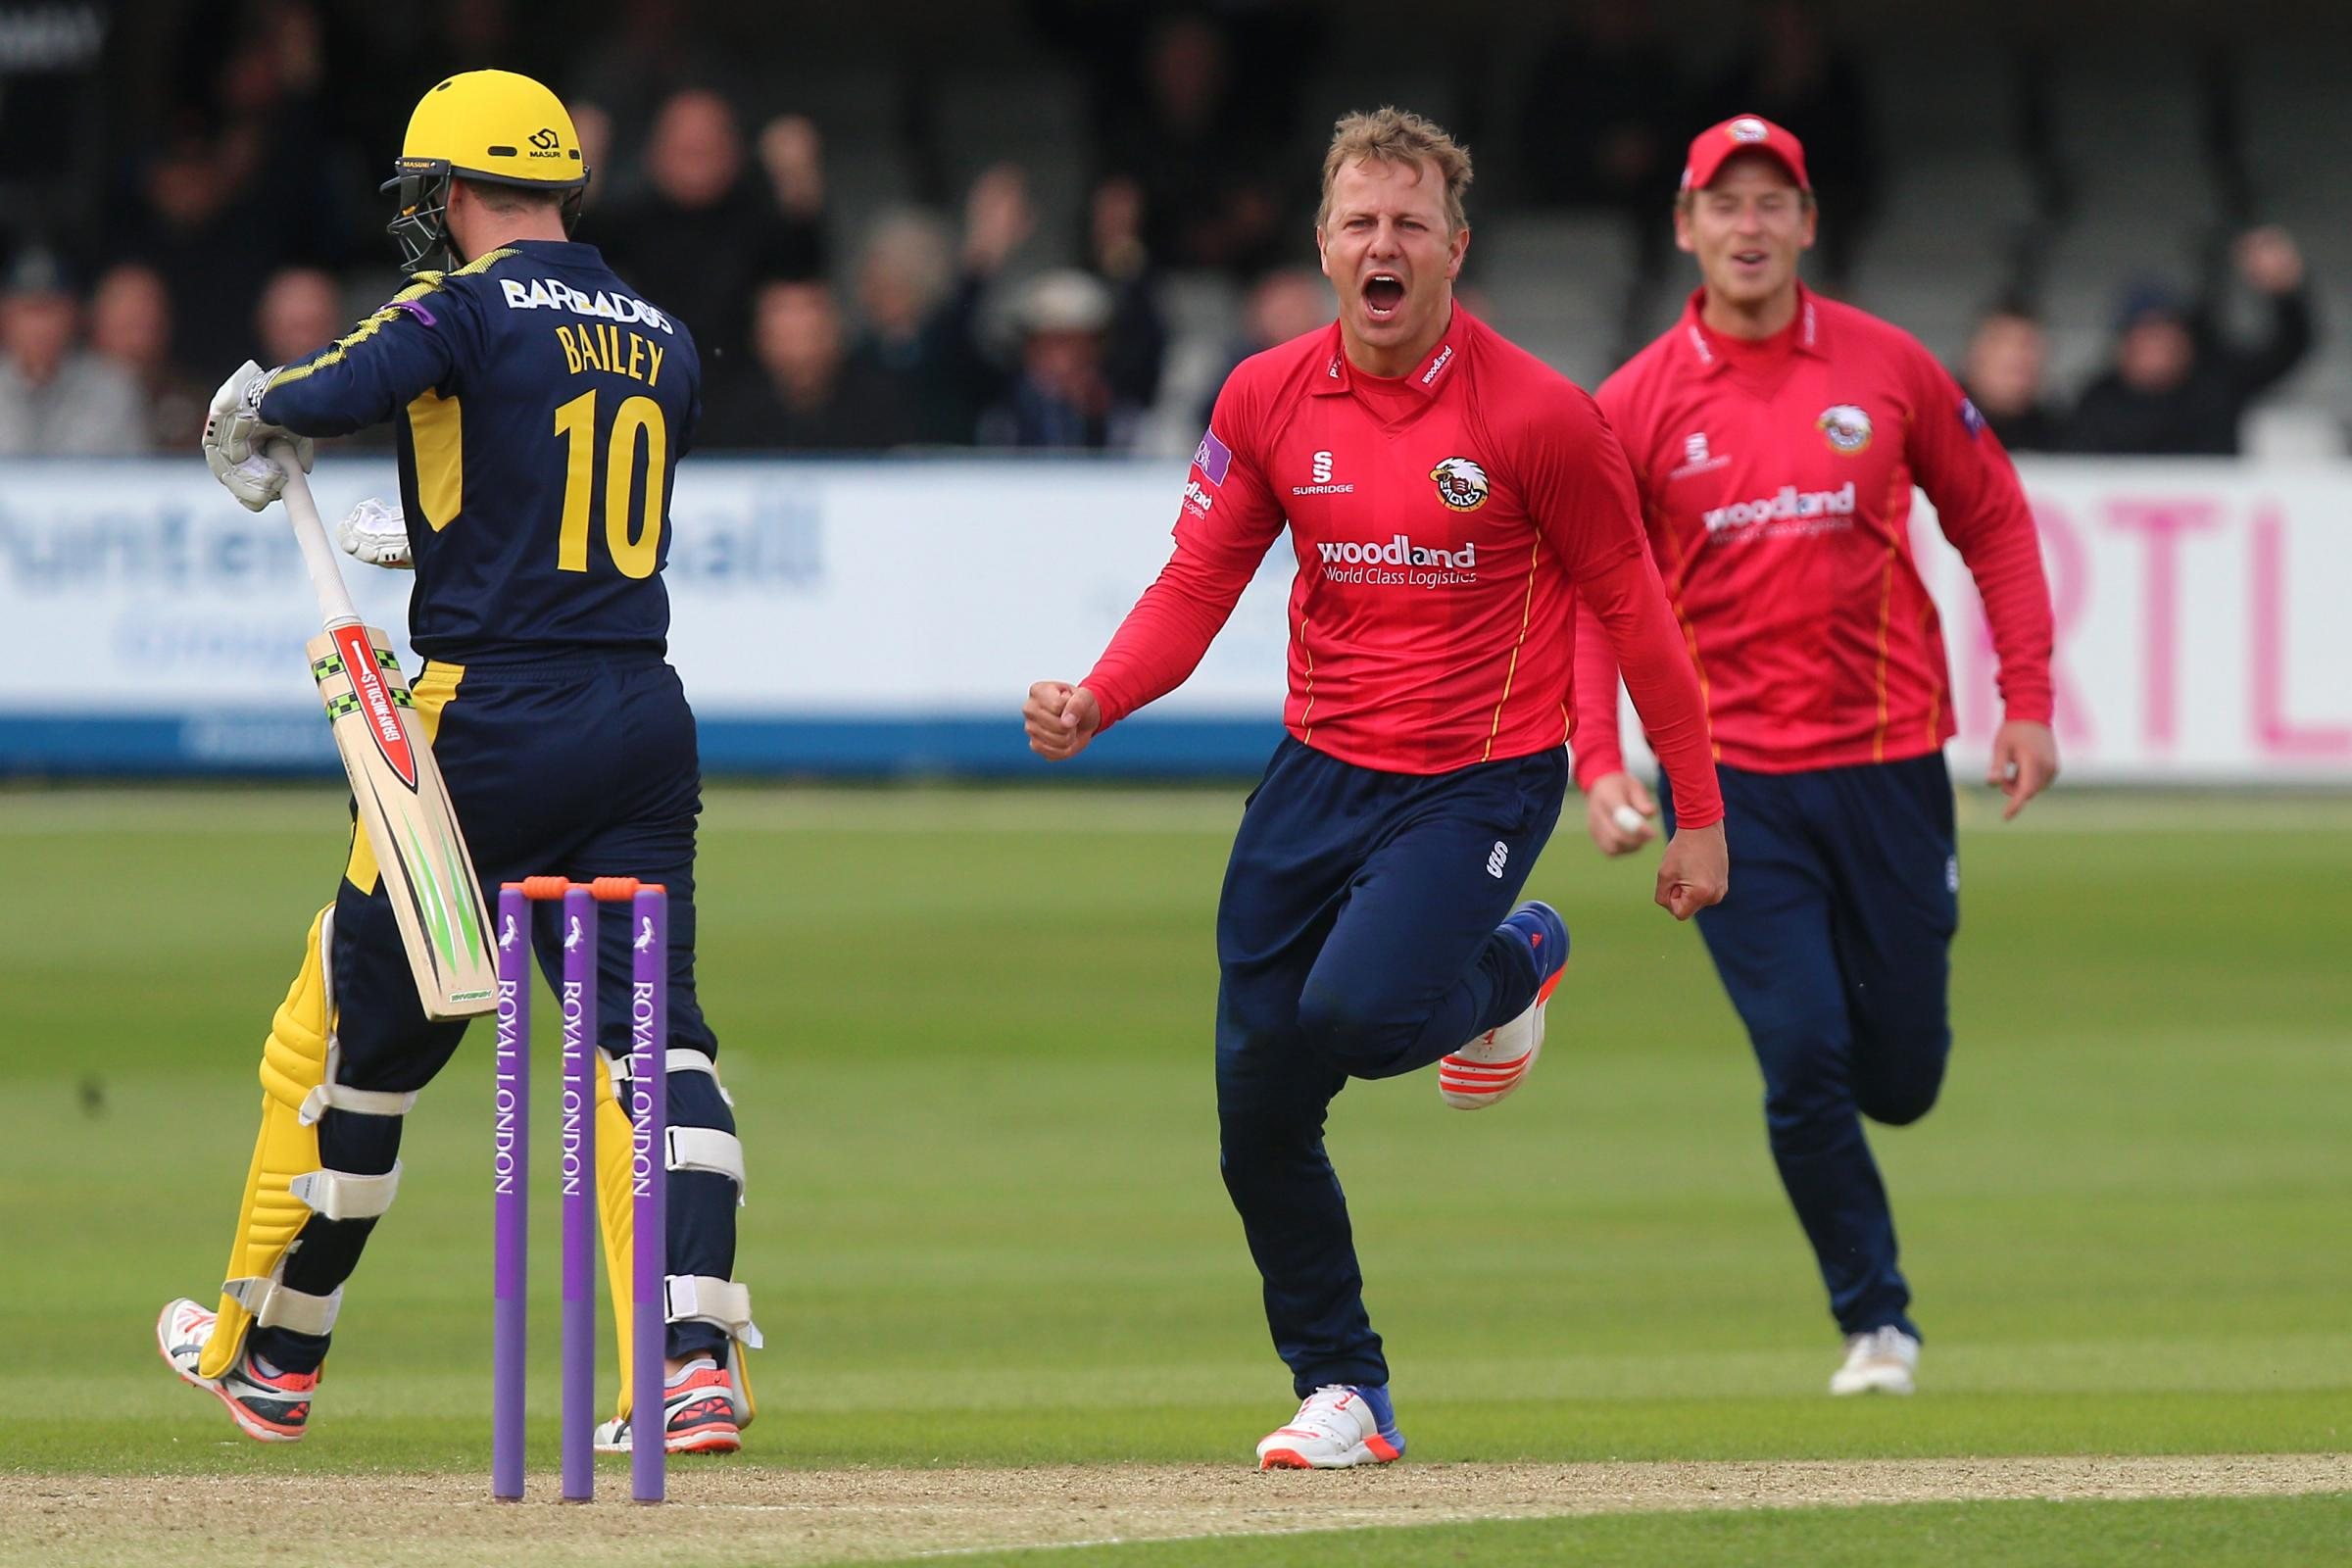 Neil Wagner celebrates taking the wicket of George Bailey during Essex Eagles game against Hampshire in last season's Royal London One-Day Cup. Picture: Gavin Ellis/TGS PHOTOS